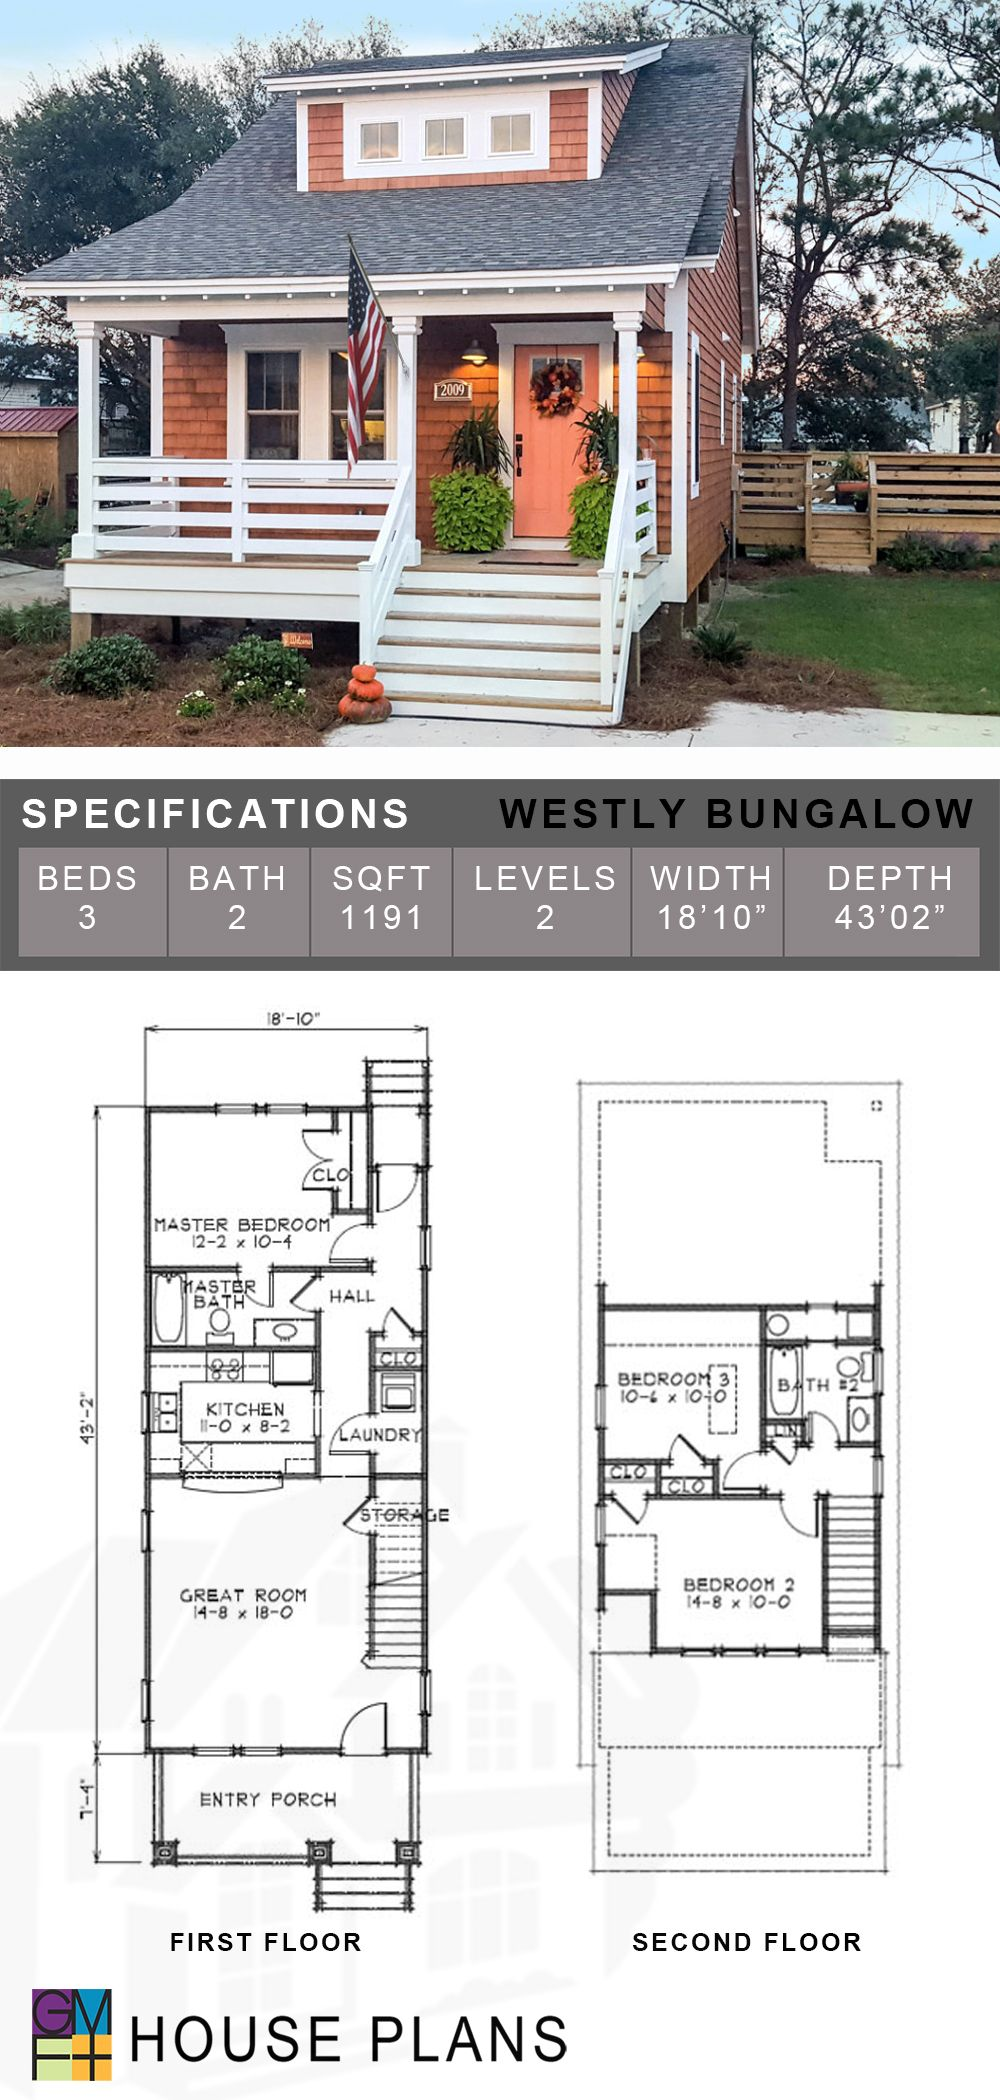 Westly Bungalow New House Plans Architect House Colorado Homes